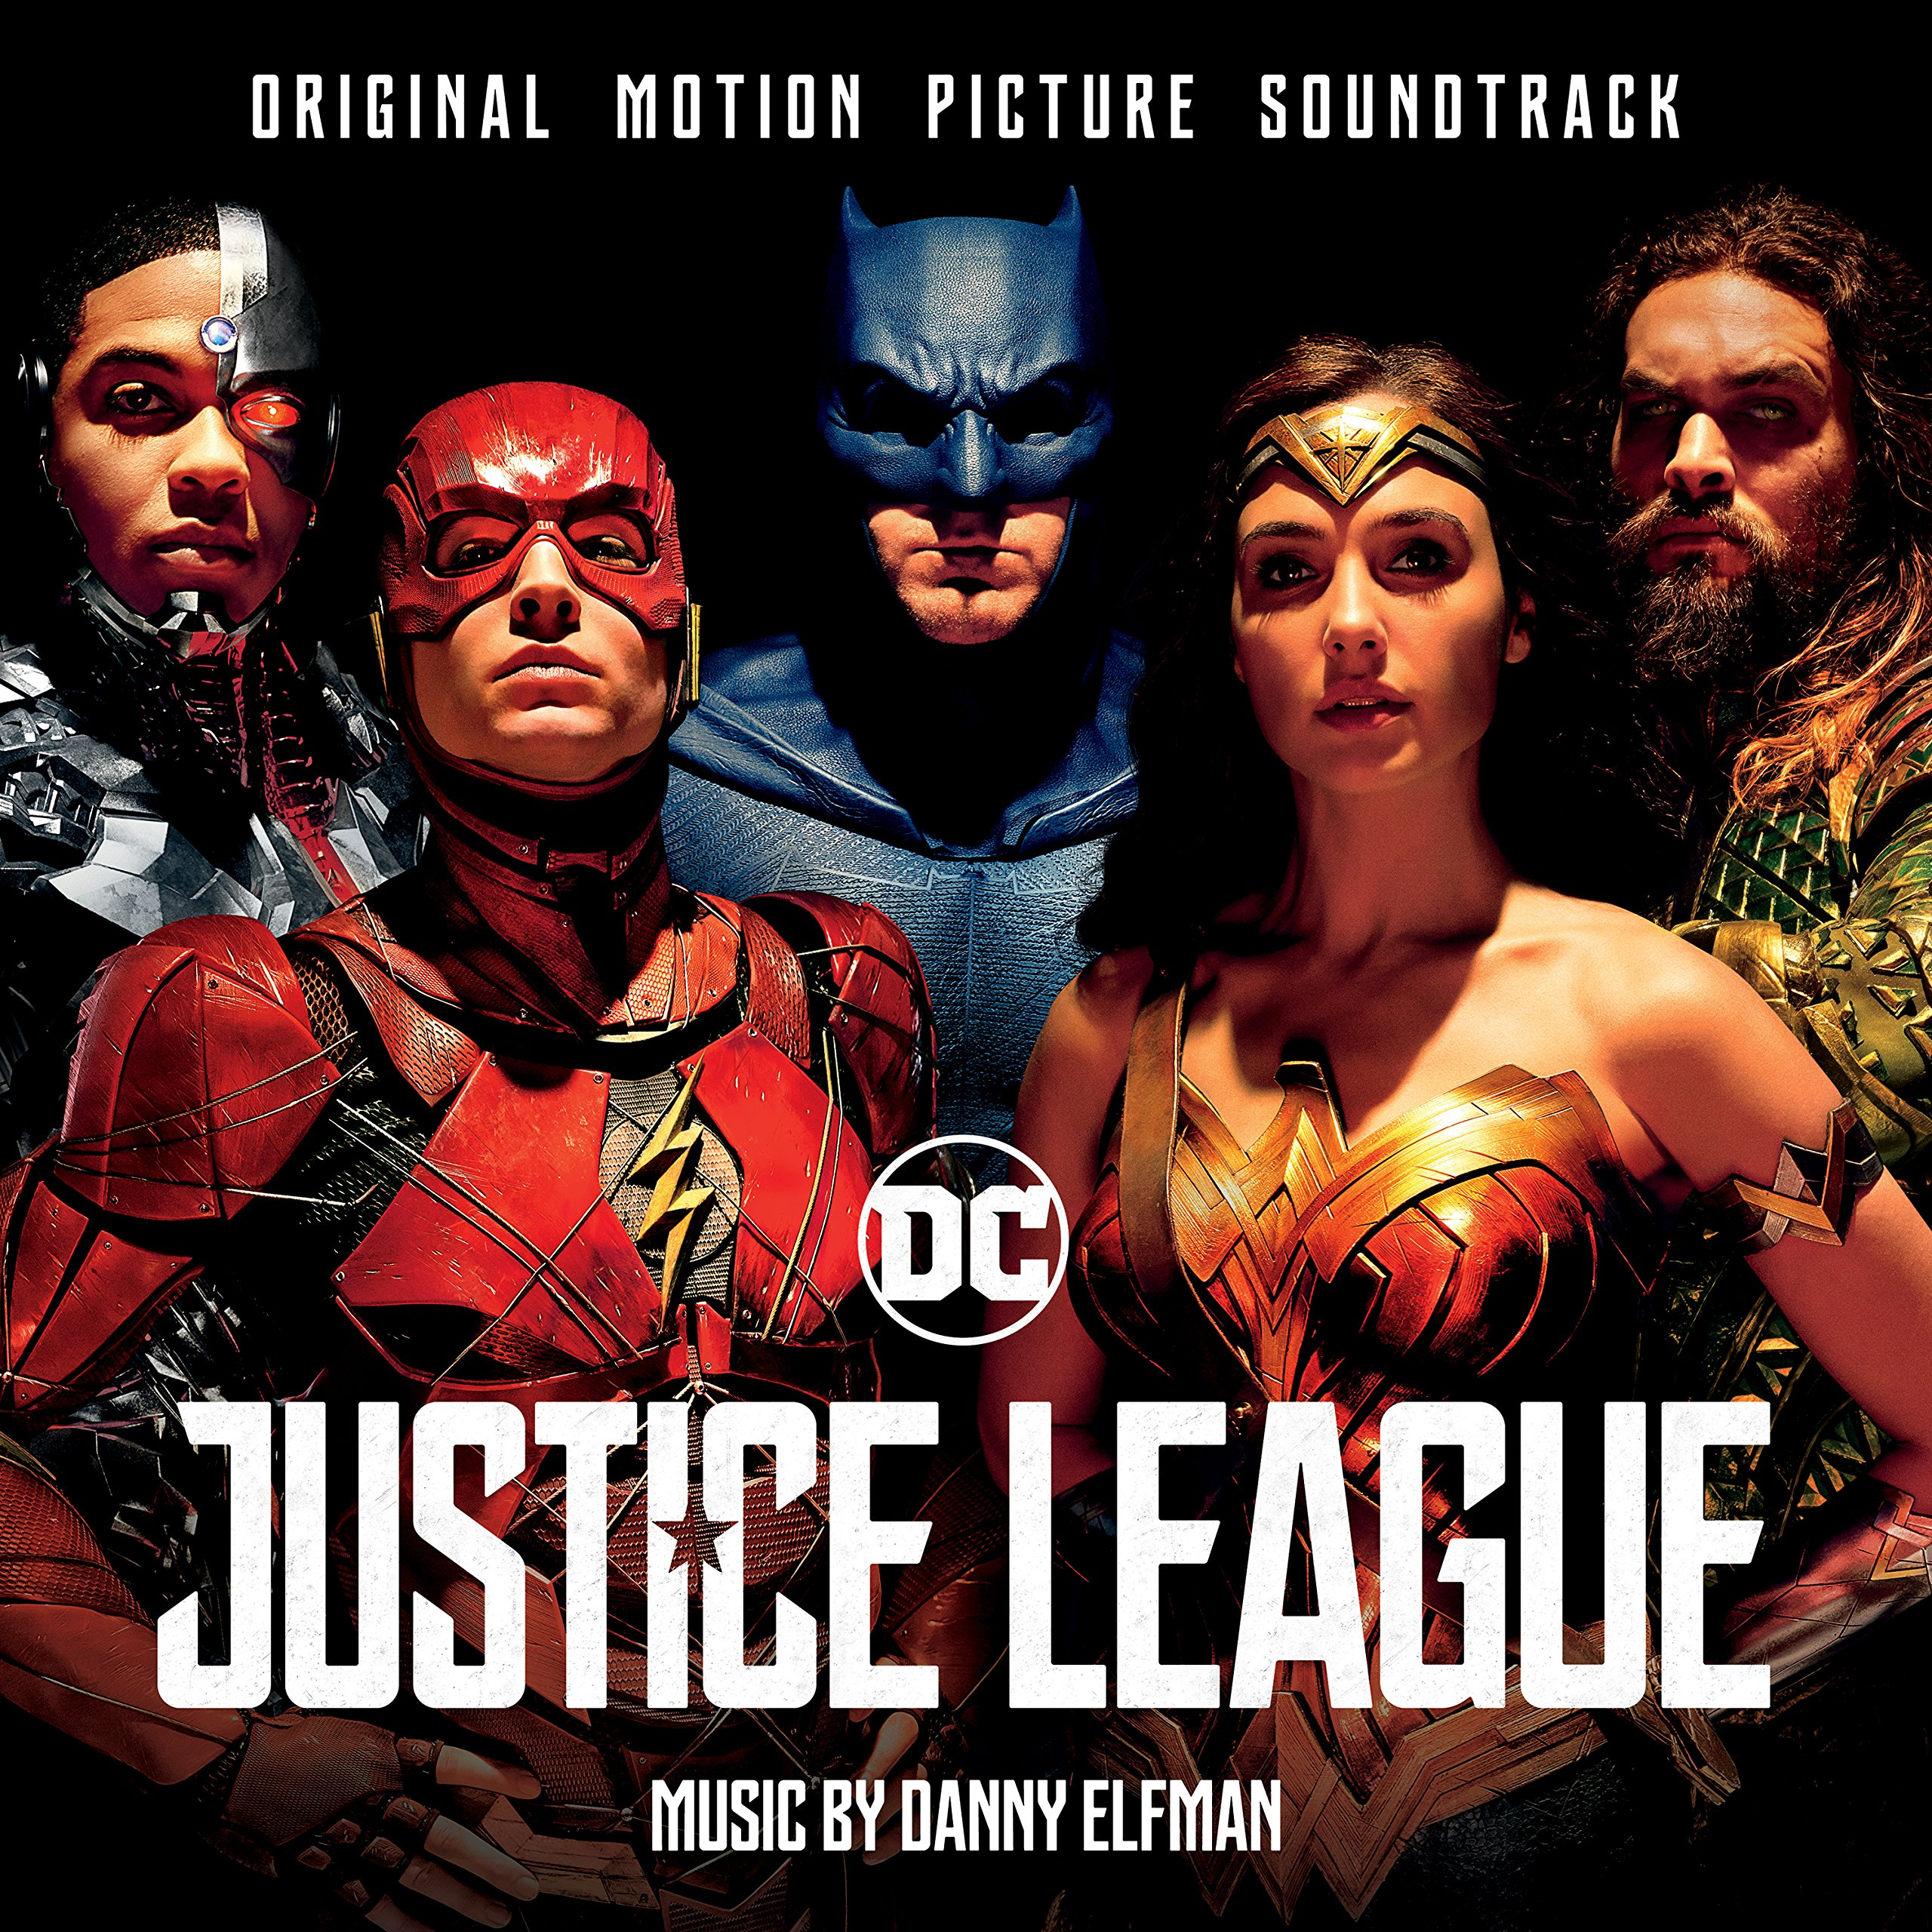 CD : Soundtrack - Justice League (2 Disc)